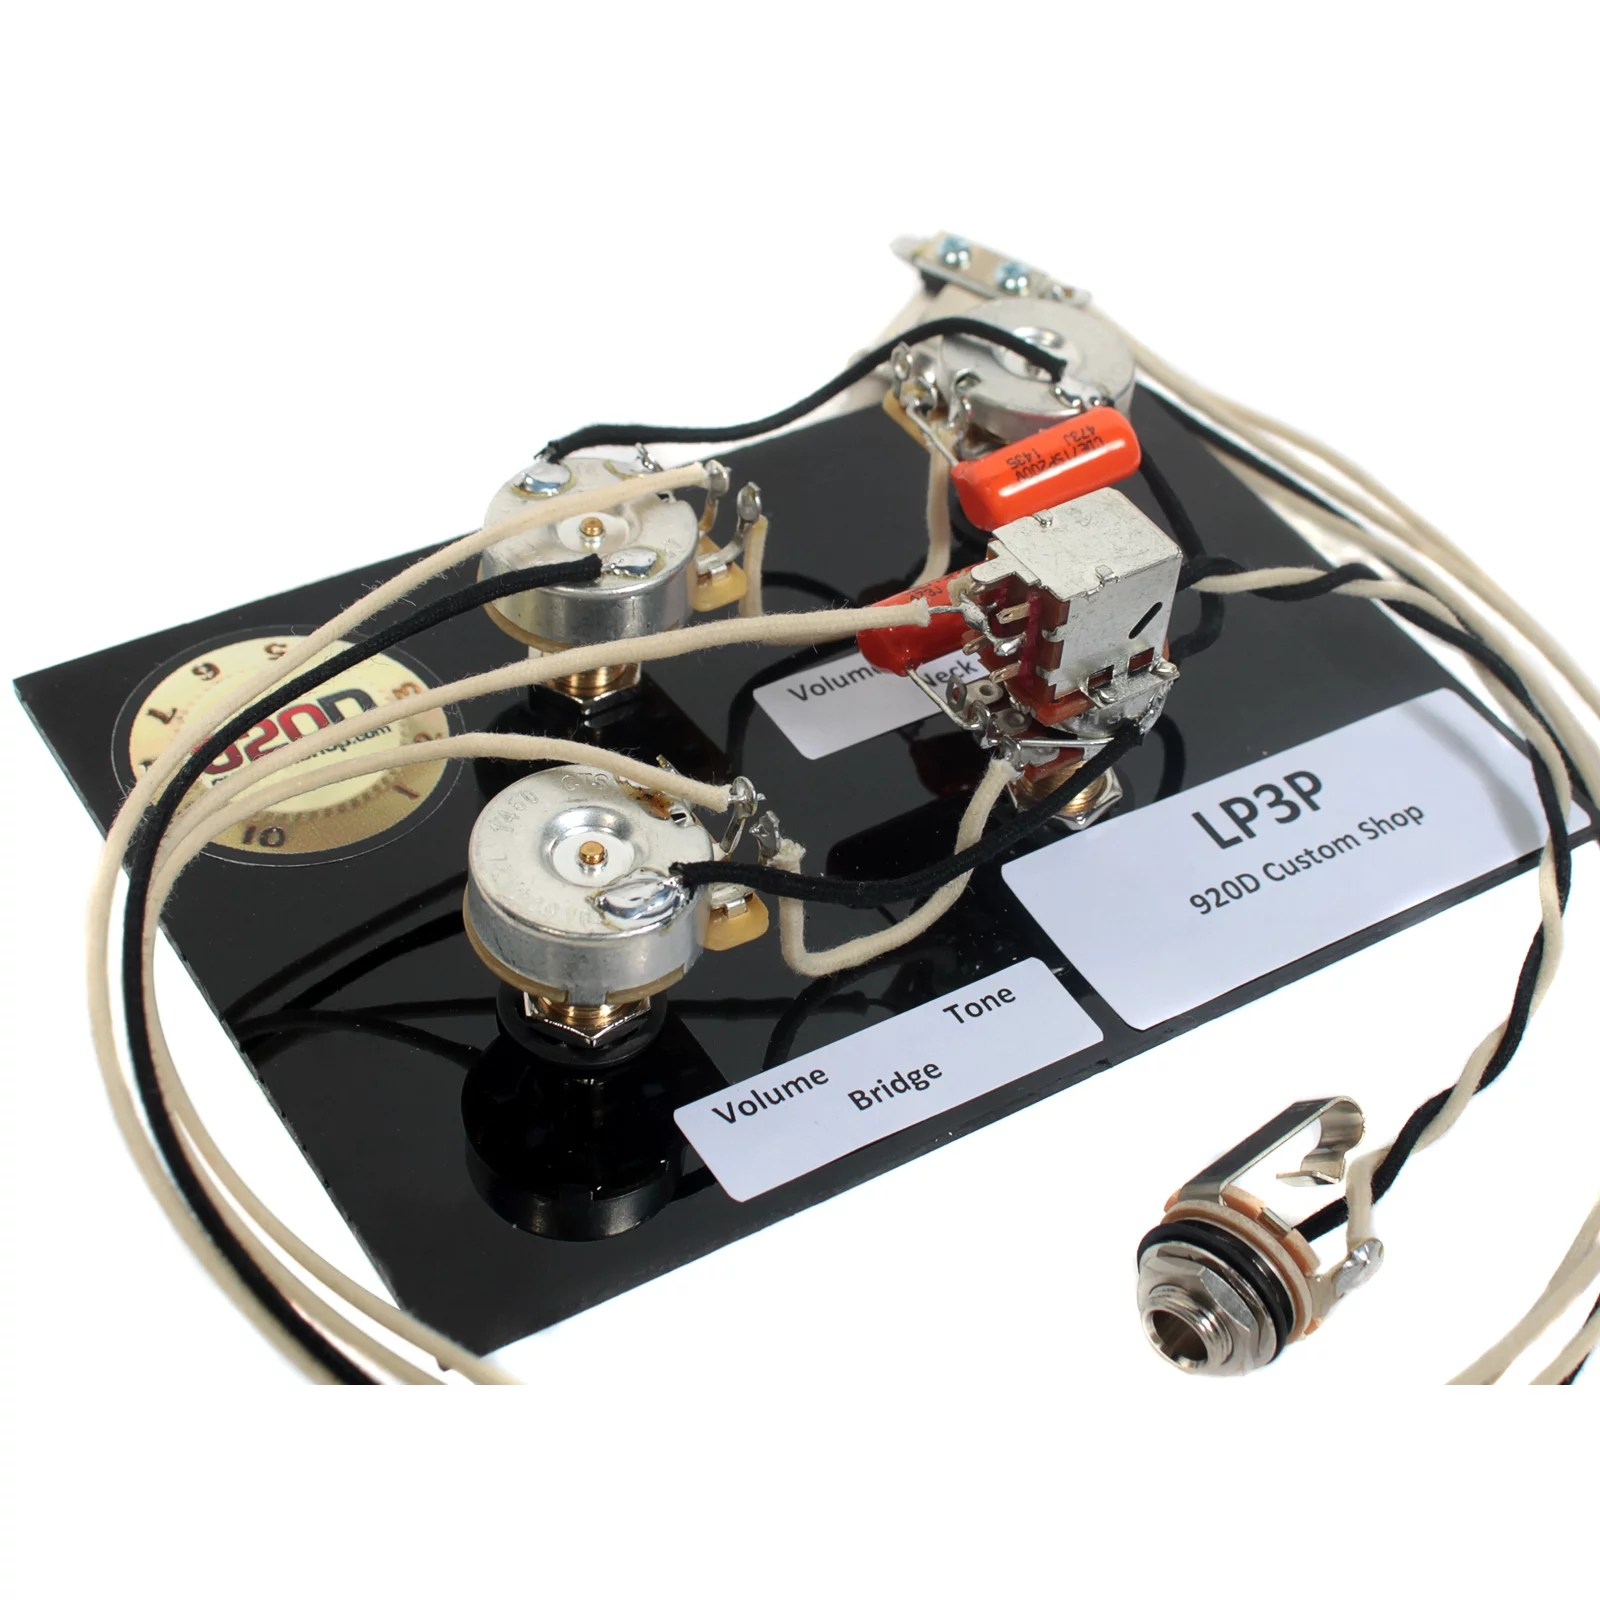 shop wiring harness also gibson les paul black beauty 3 pickup 1978 gibson les paul wiring harness [ 1600 x 1600 Pixel ]